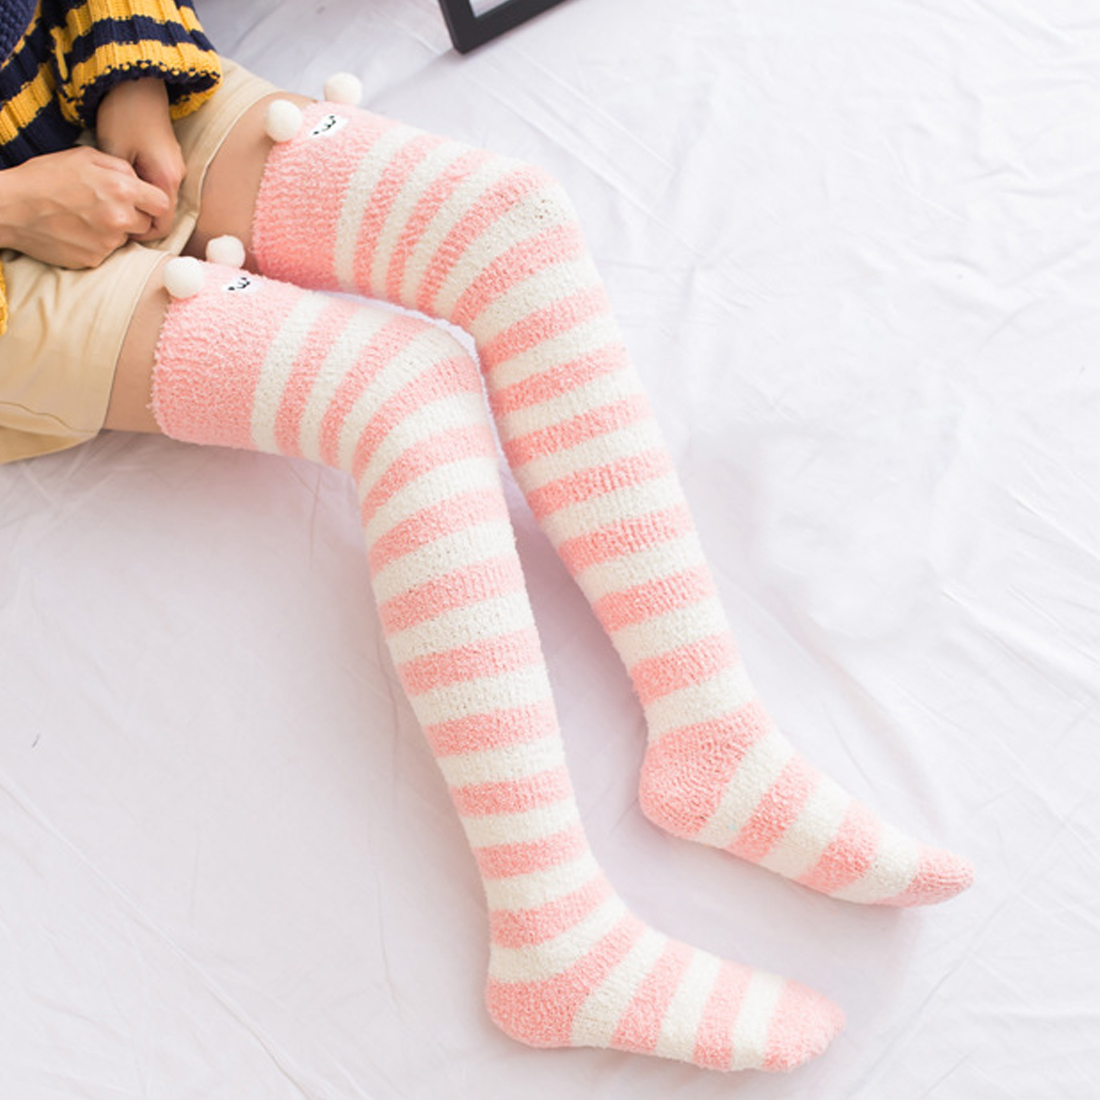 New Japanese Girl Animal Modeling Knee Socks Striped Cute Lovely Kawaii Cozy Long Thigh High Socks Winter Warm Sock